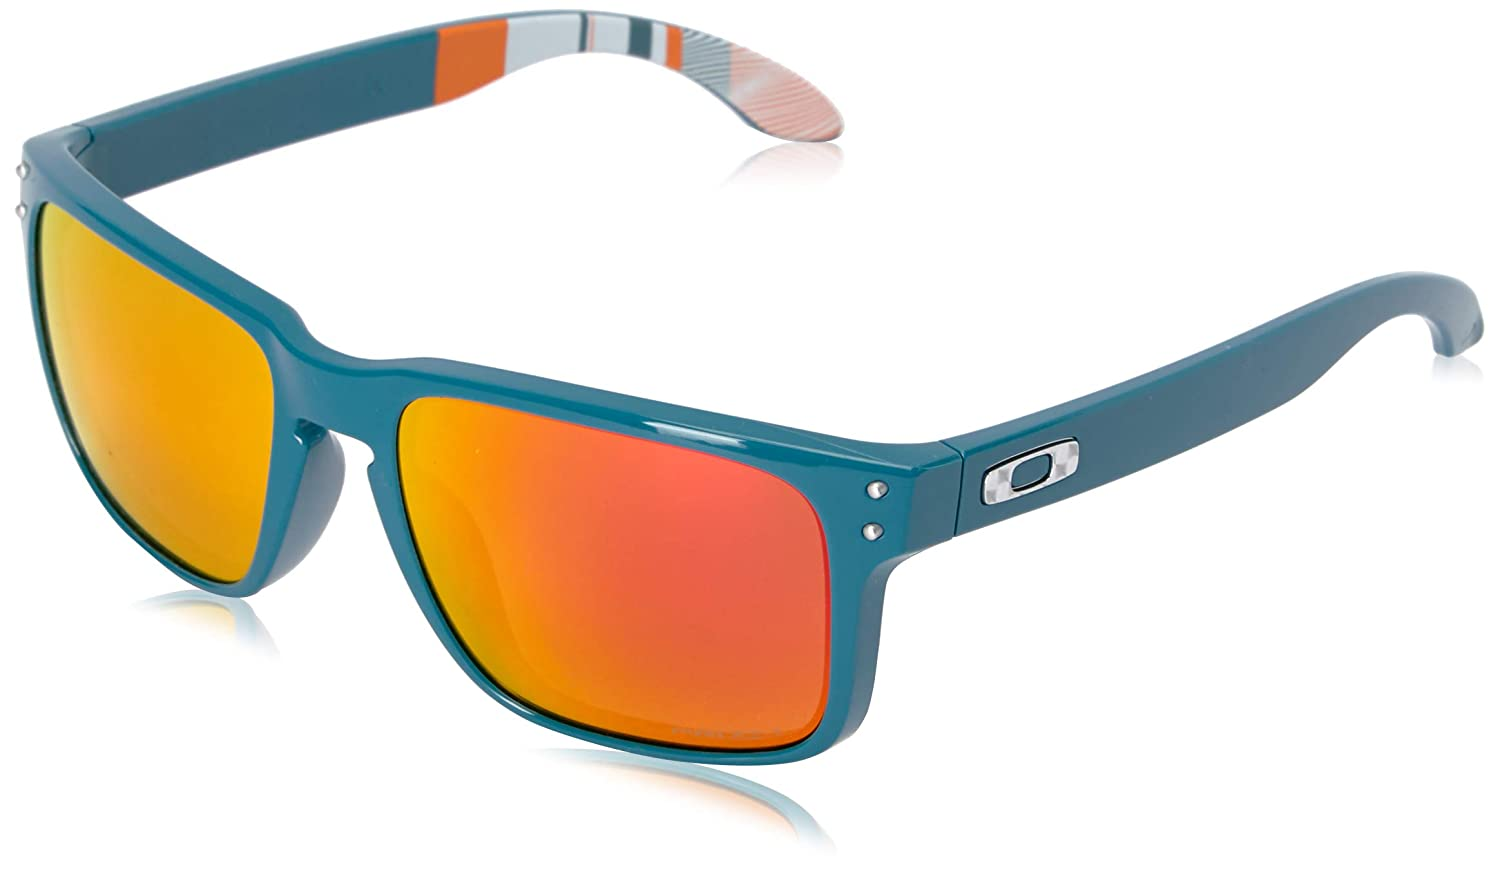 6ce33be531c Amazon.com  Oakley Men s Holbrook Aero Sunglasses